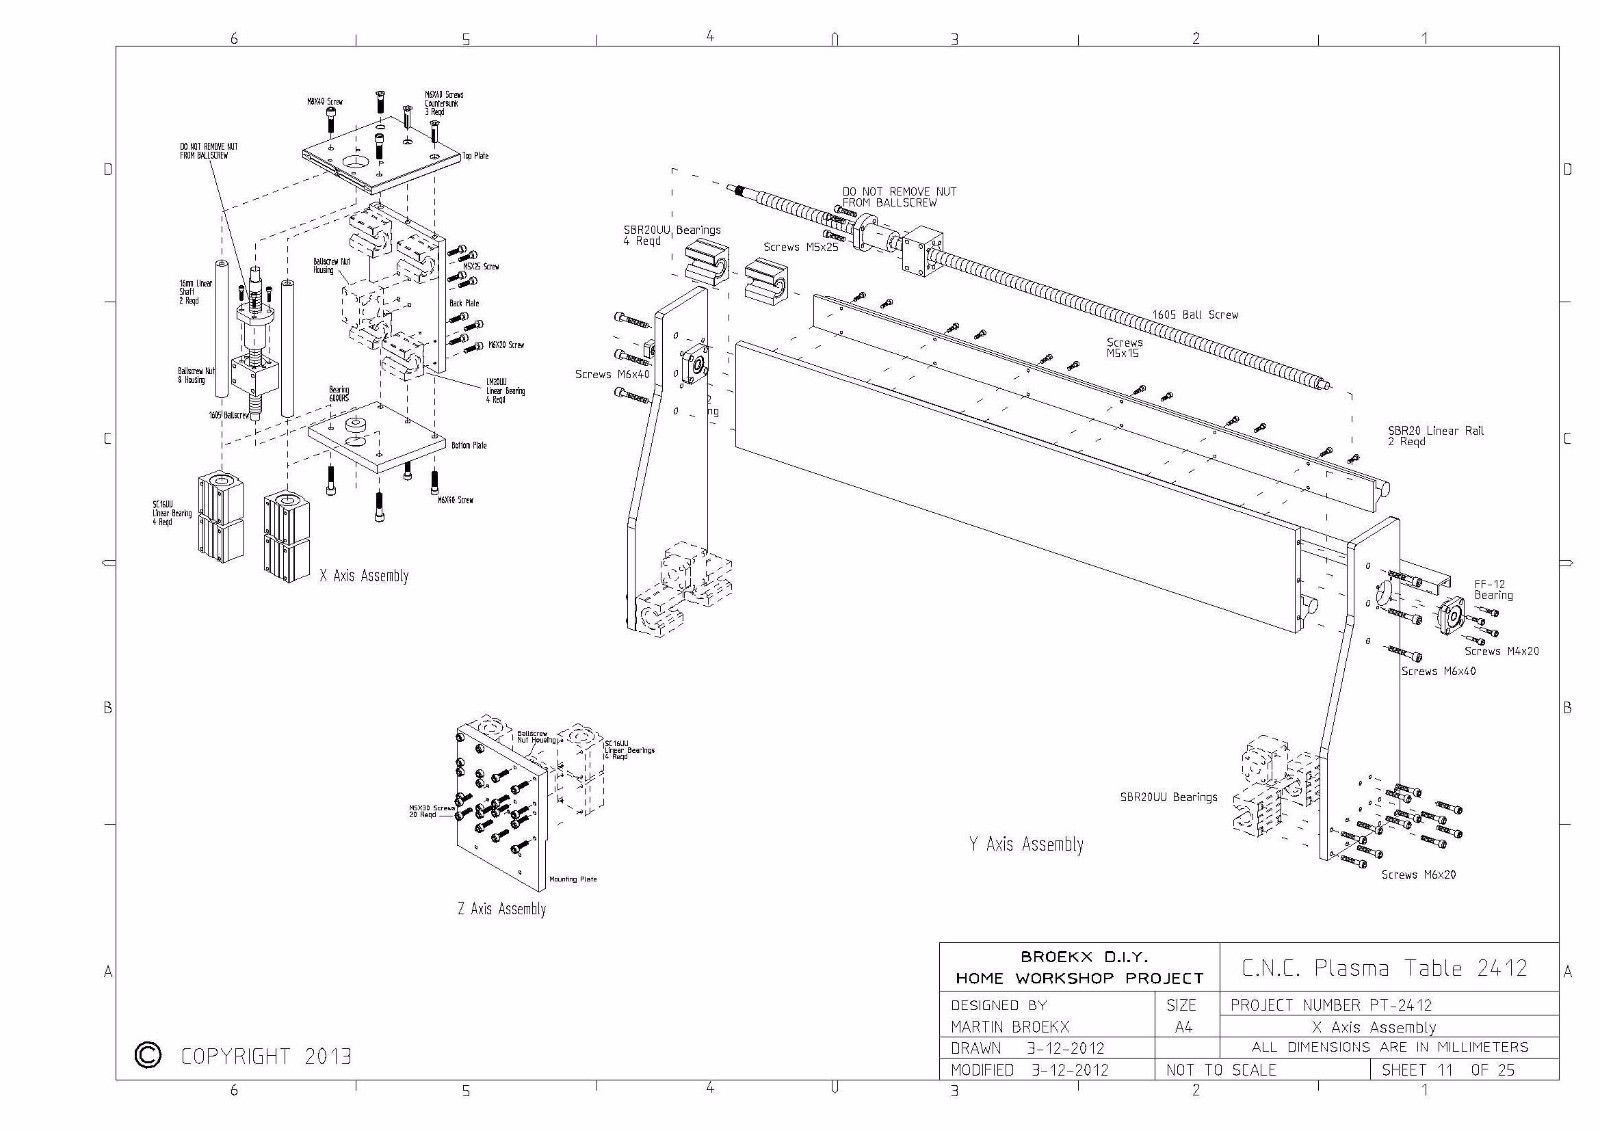 Pin Plans For Broekx 3 Axis Cnc Plasma Table 2412 On Pinterest Cnc Plasma Table Cnc Plasma Cnc